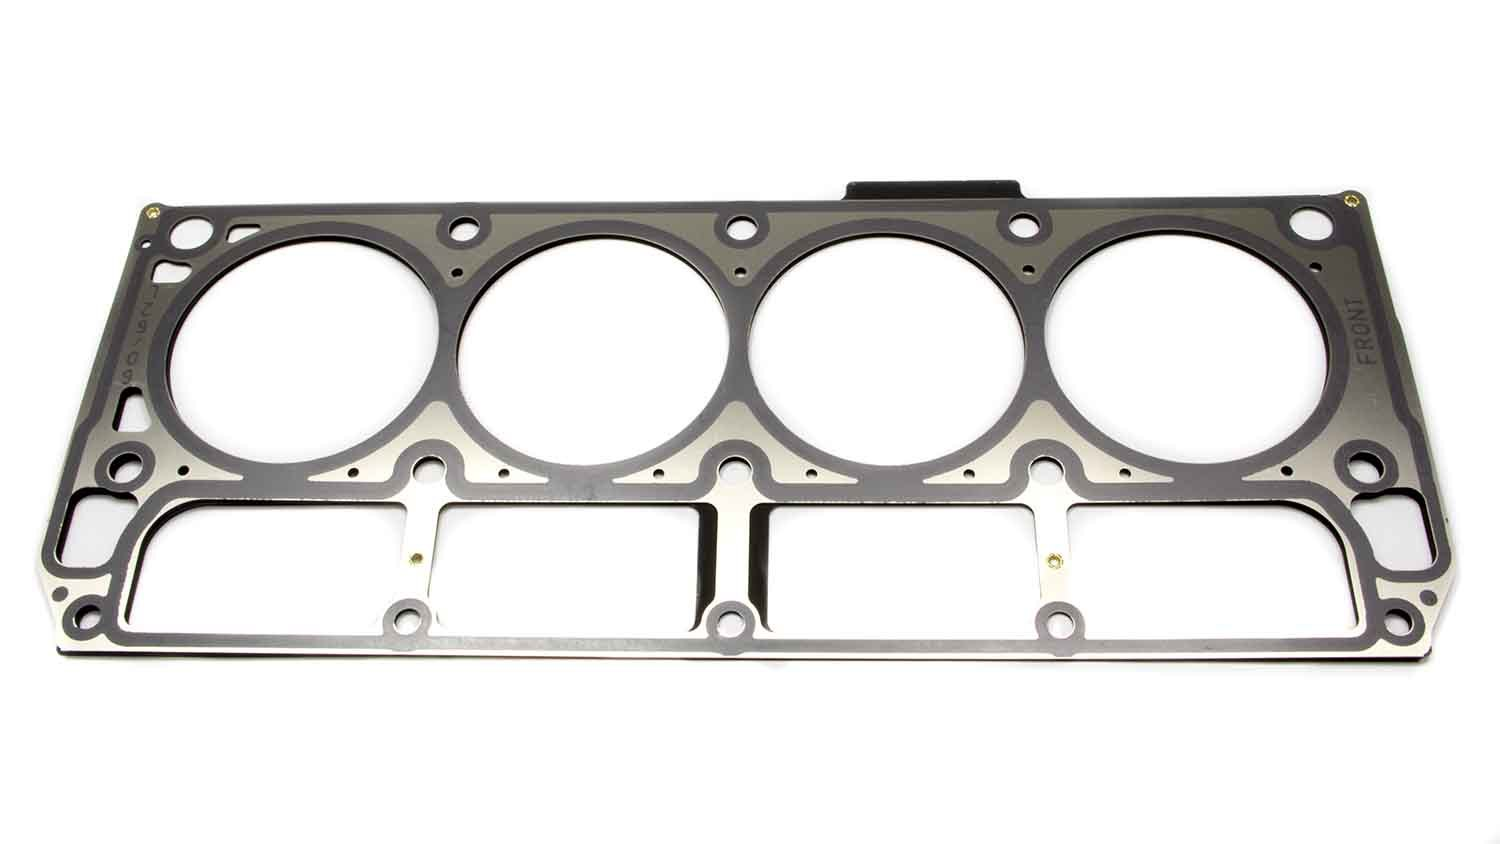 LS3/L92 MLS Head Gasket - 4.080 Bore x .051